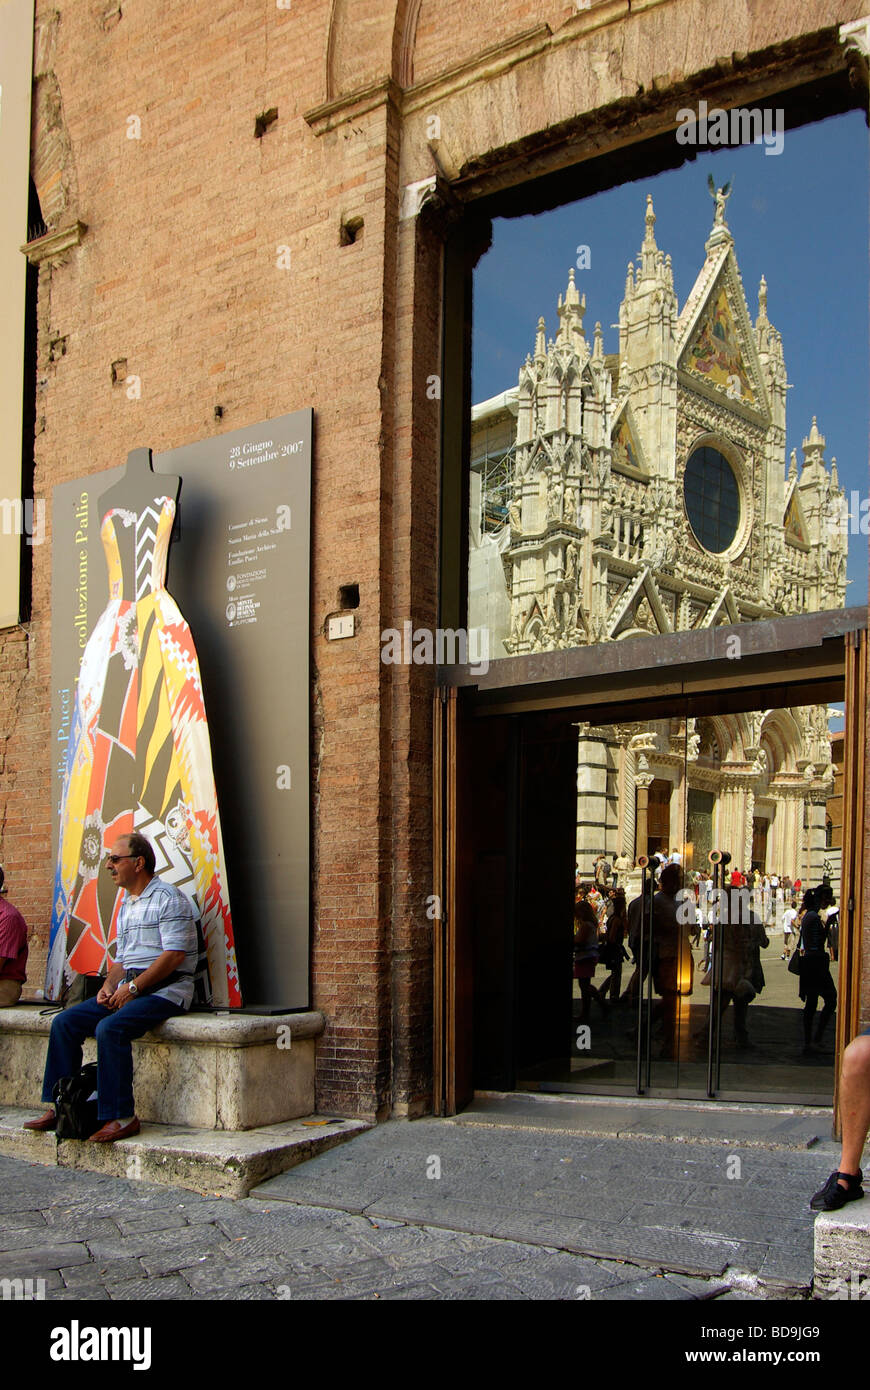 Tourist man sits in the shade outside the museum of Santa Maria della Scala with the Duomo (cathedral) reflected Stock Photo